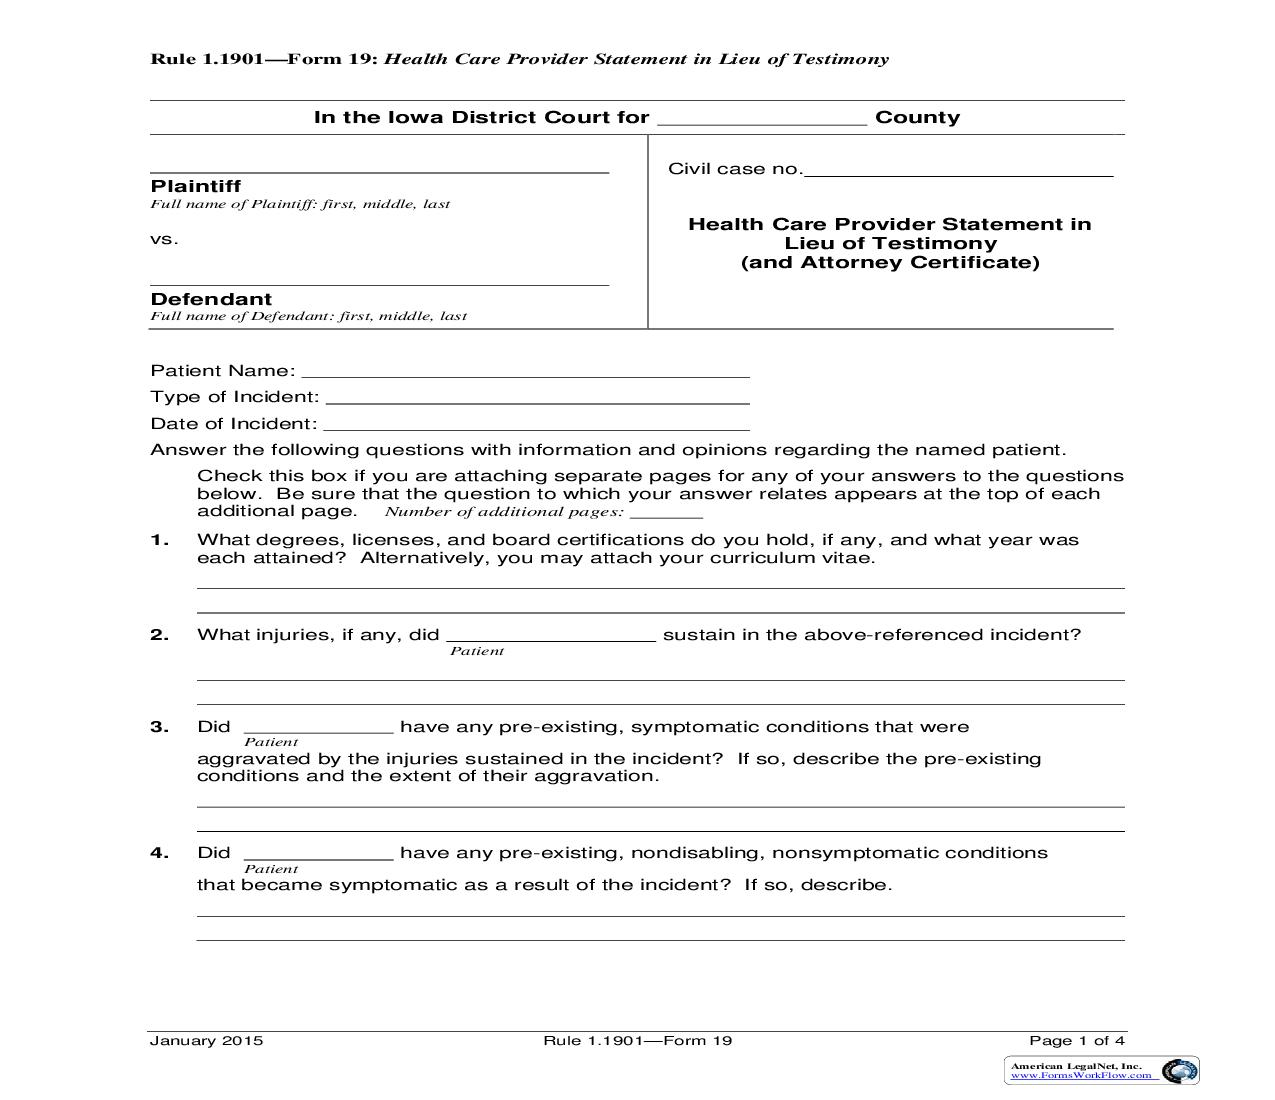 Health Care Provider Statement In Lieu Of Testimony (And Attorney Certificate) {Rule 1.1901 Form 19} | Pdf Fpdf Doc Docx | Iowa